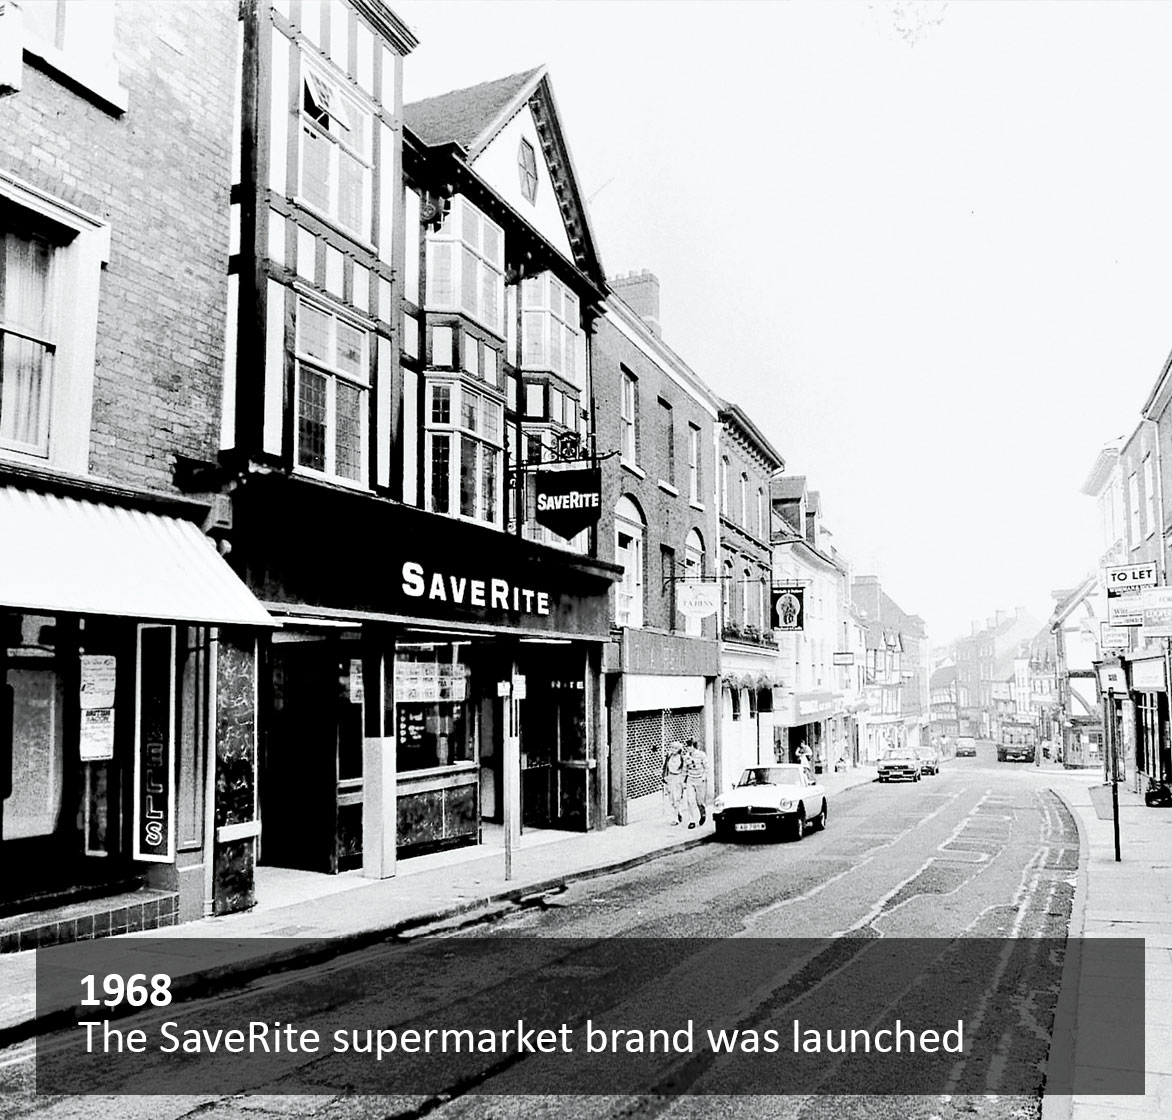 The SaveRite supermarket brand was launched in 1968